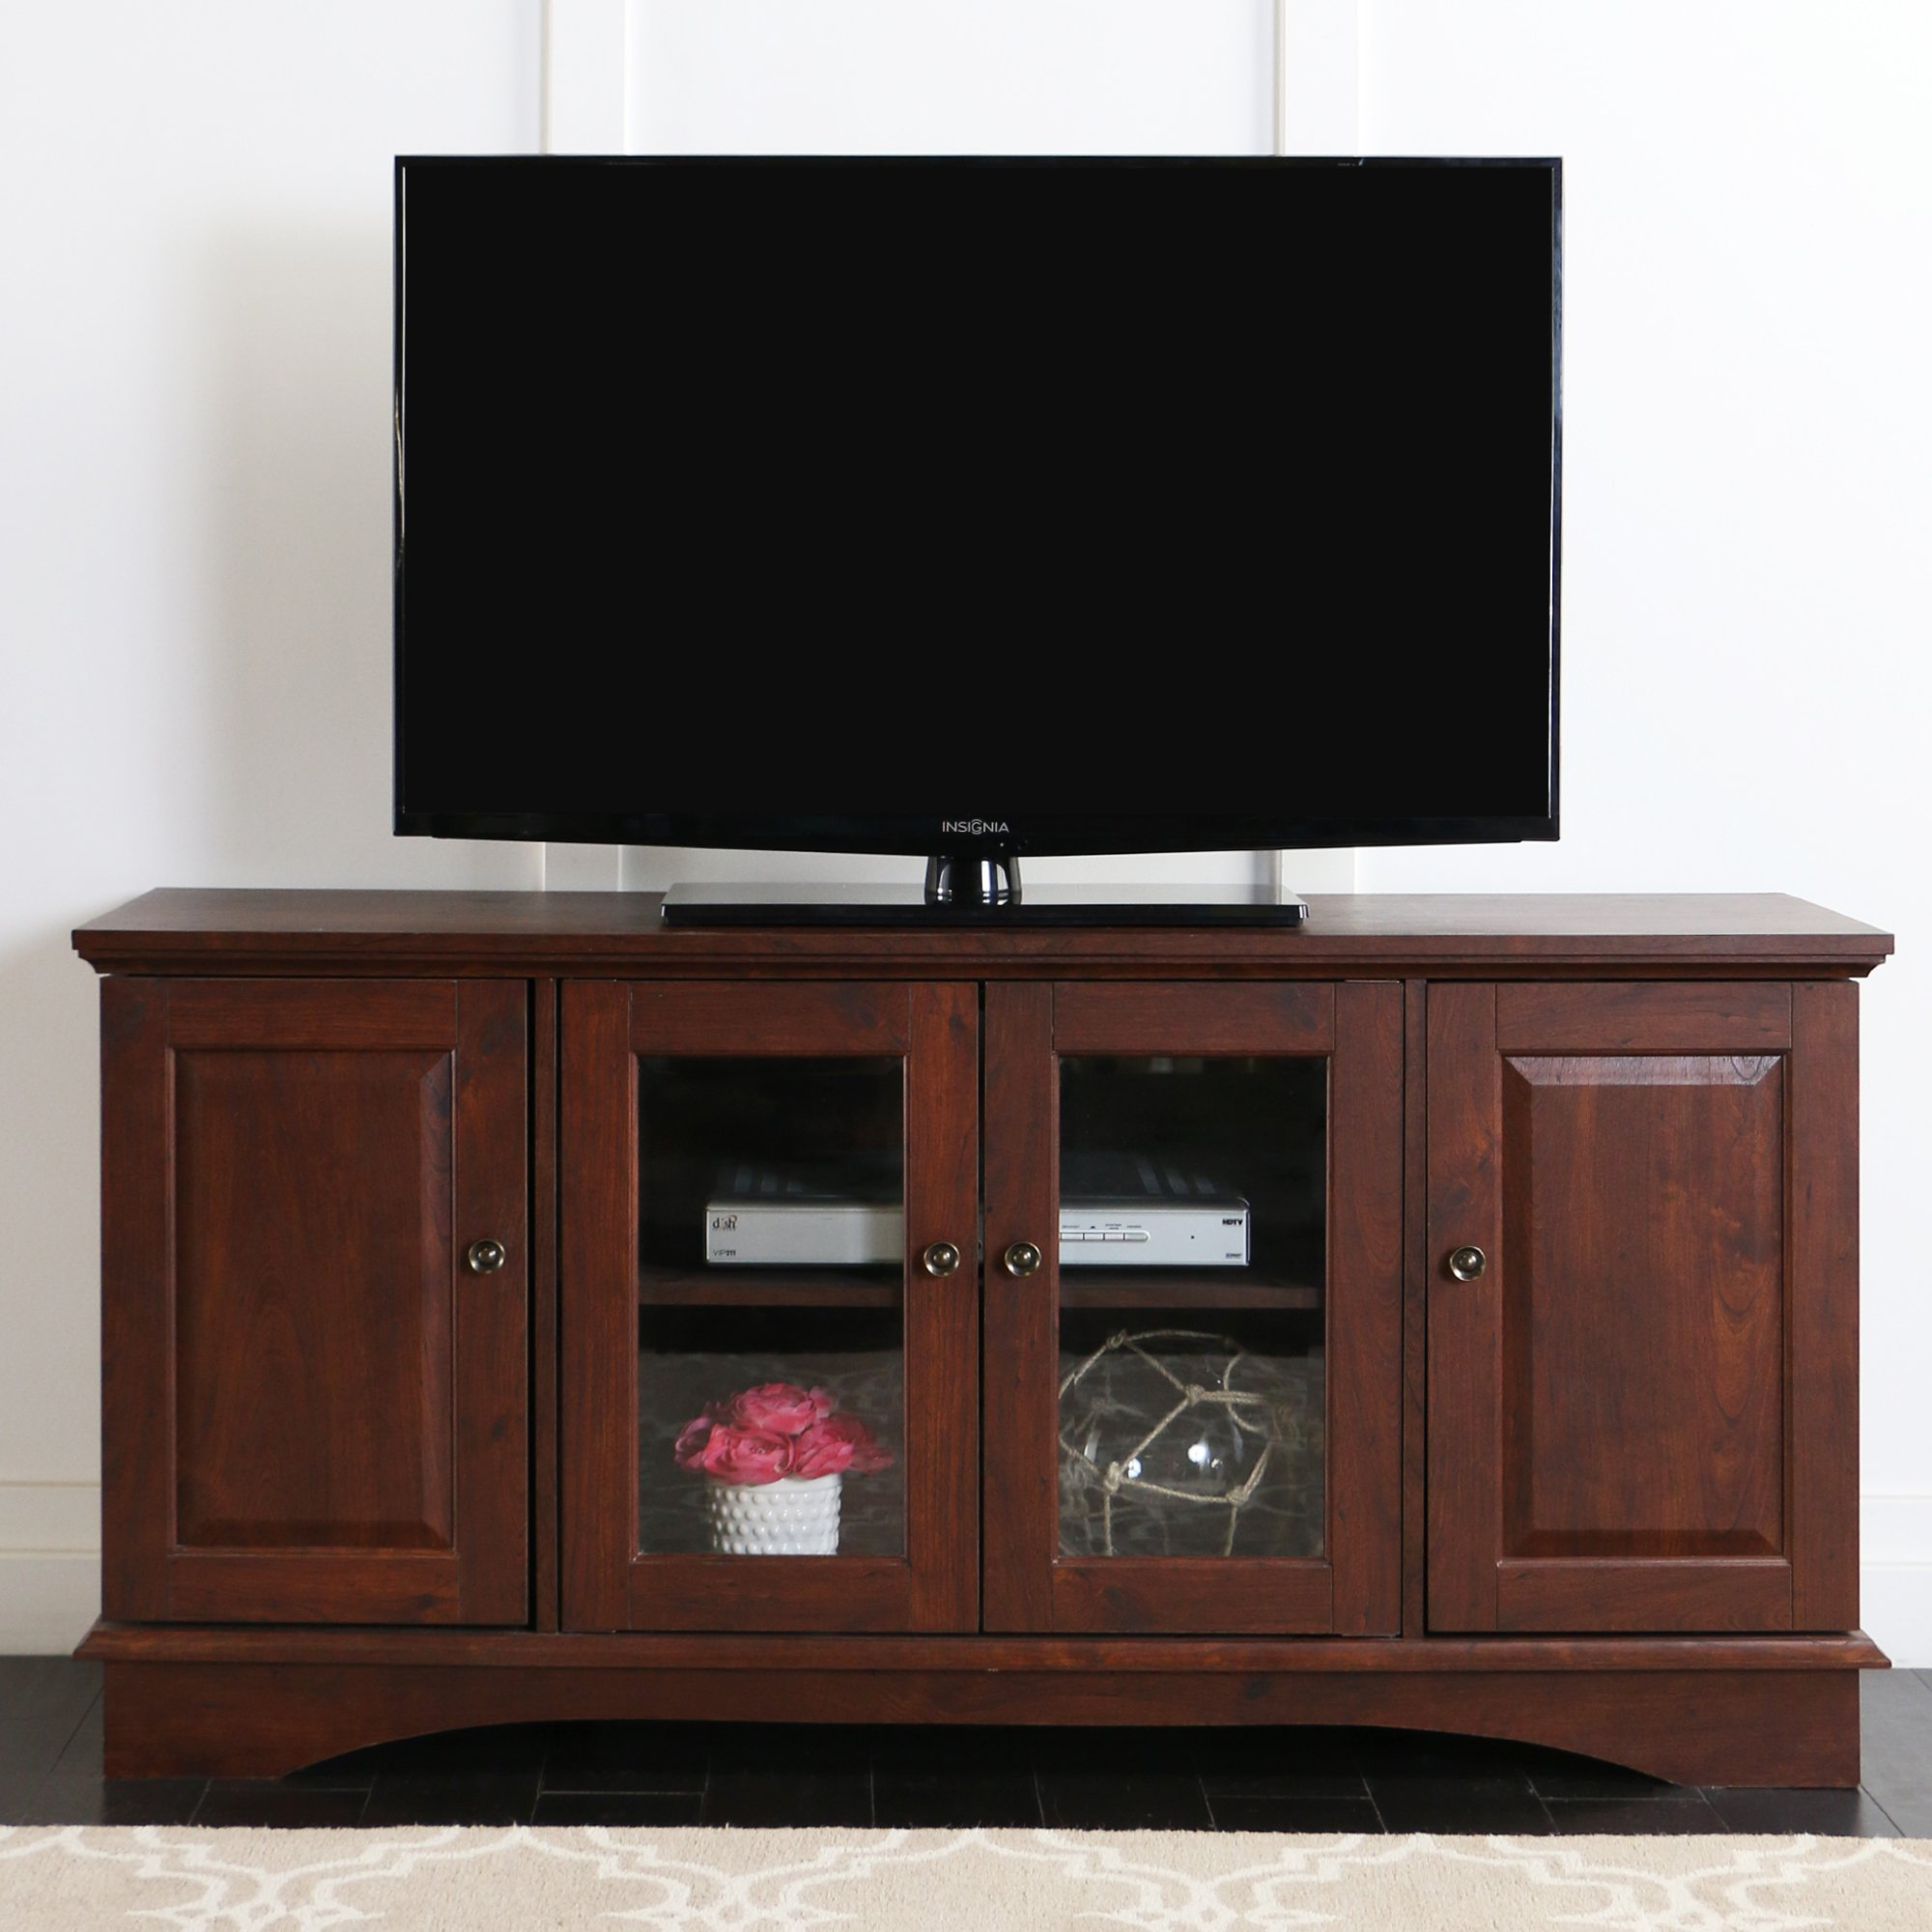 Walker Edison 52'' Brown Wood Storage TV Stand Console for Flat Screen TV's Up to 50'' Entertainment Center by Walker Edison Furniture Company